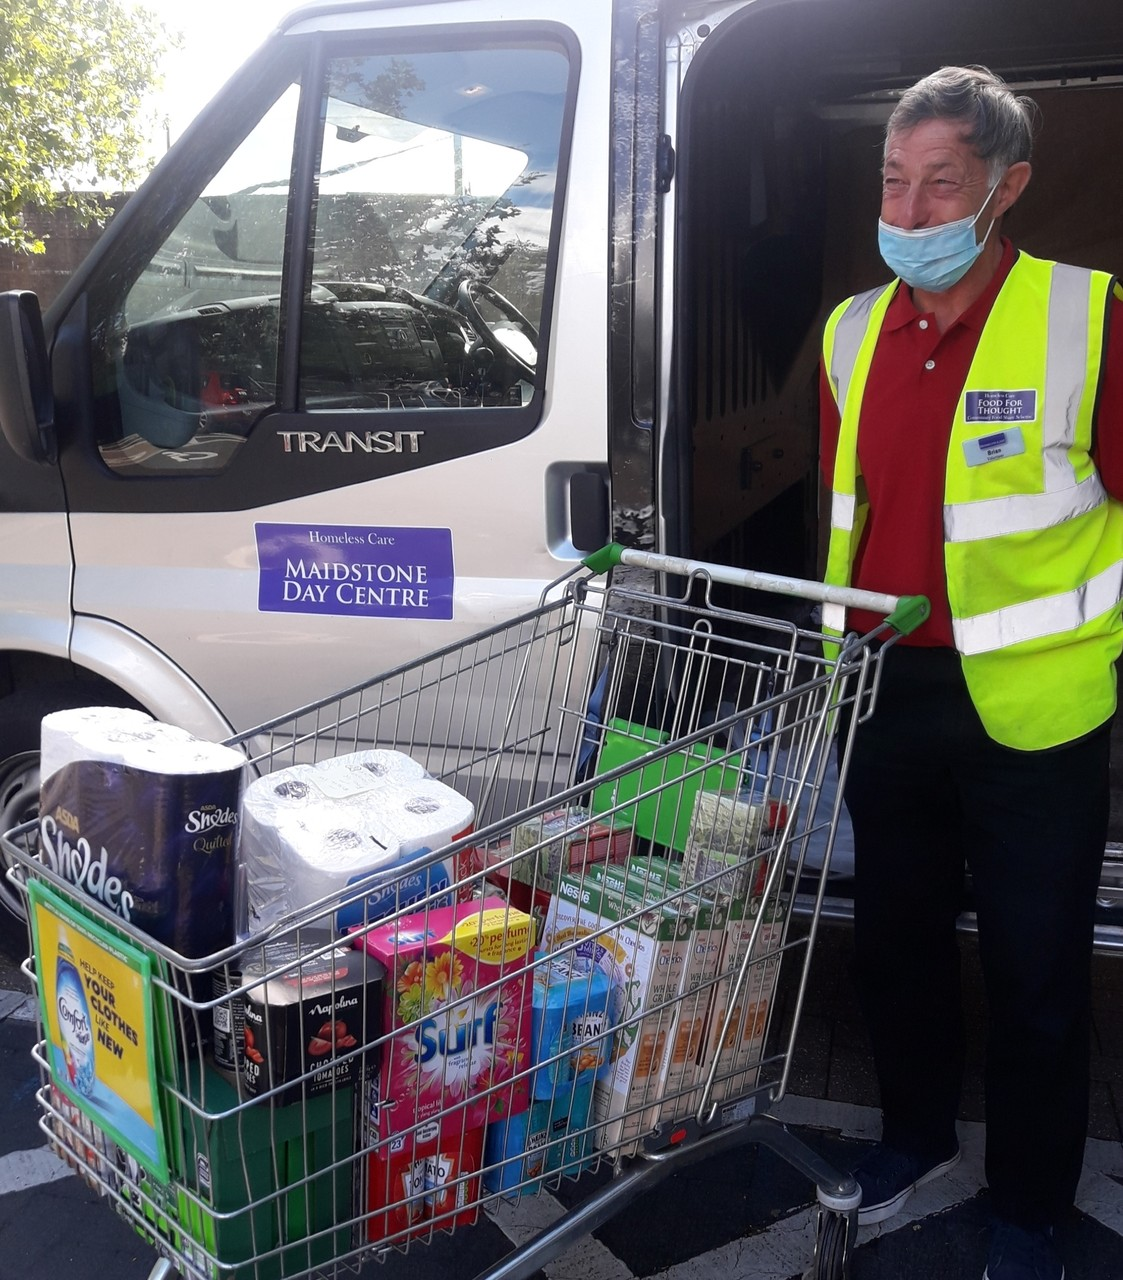 Charity donation to Maidstone Day Centre to help homeless people in the community | Asda Kingshill